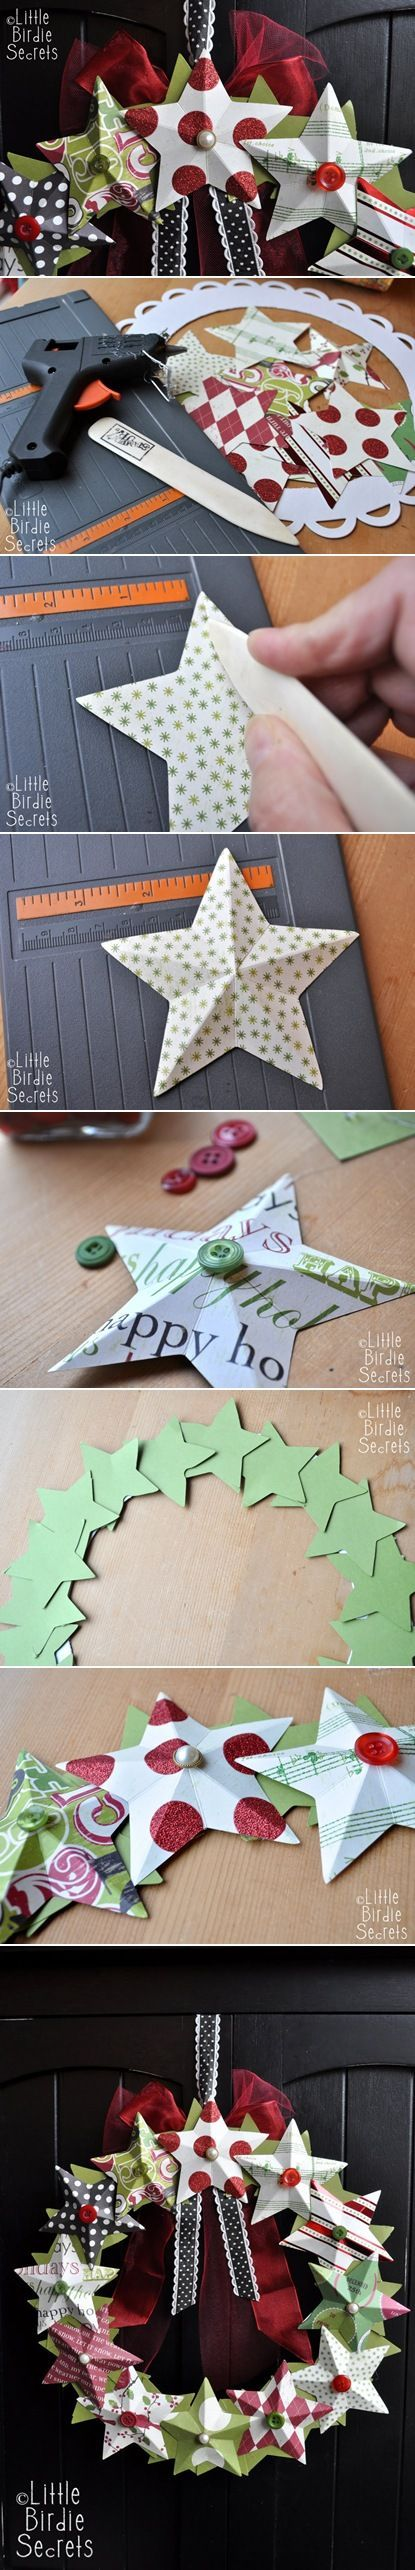 3D paper star wreath tutorial ... plethora of patterned paper stars with button centers ... wonderful!: